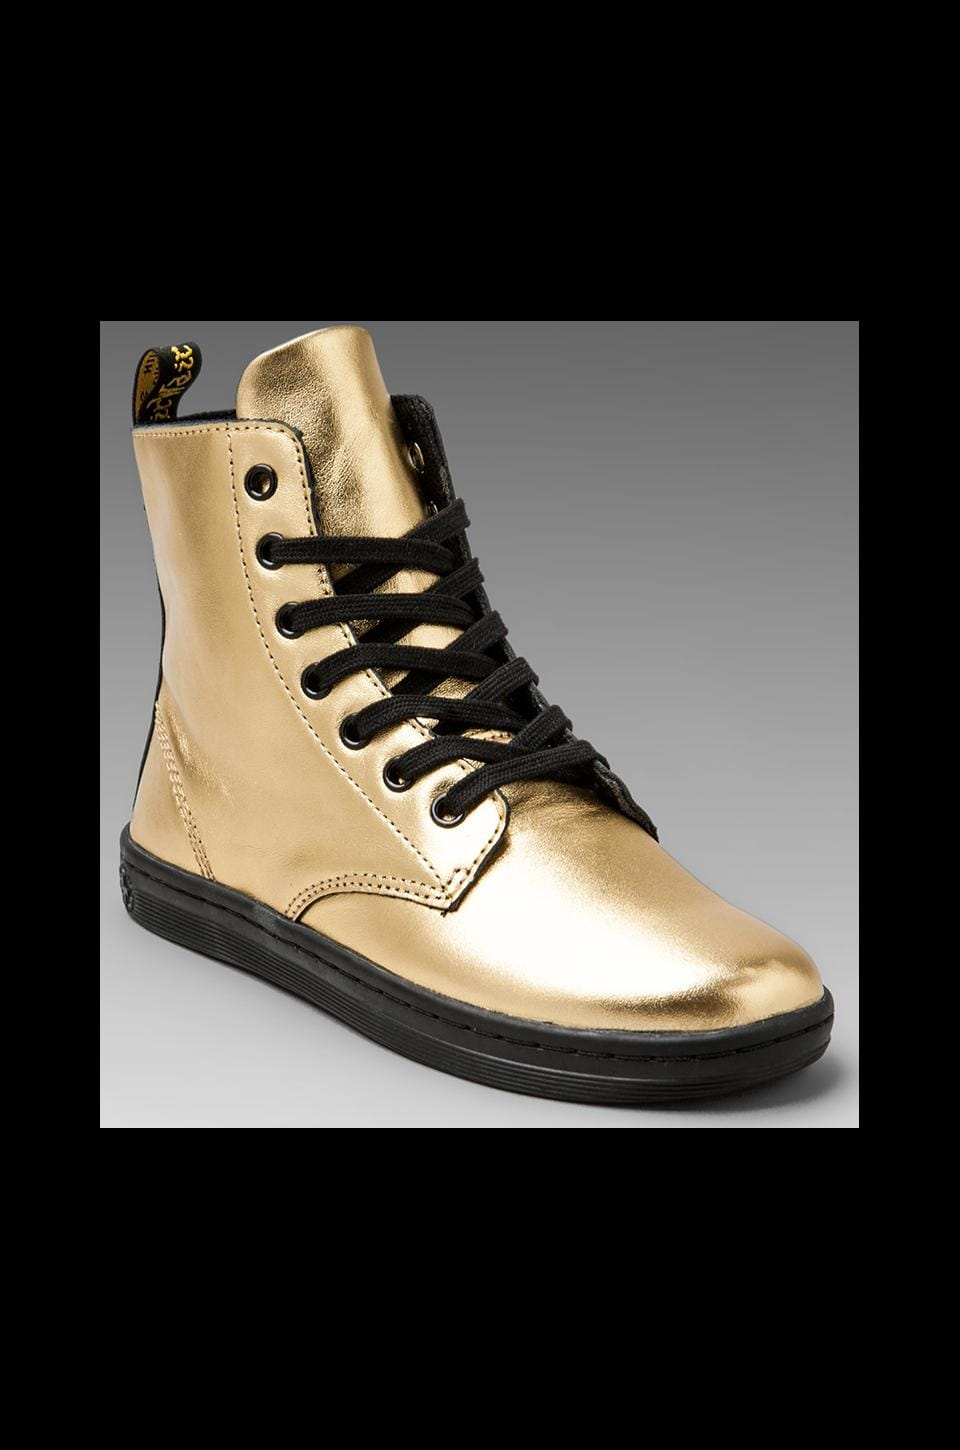 Dr. Martens Leyton 7-Eye Boot in Gold